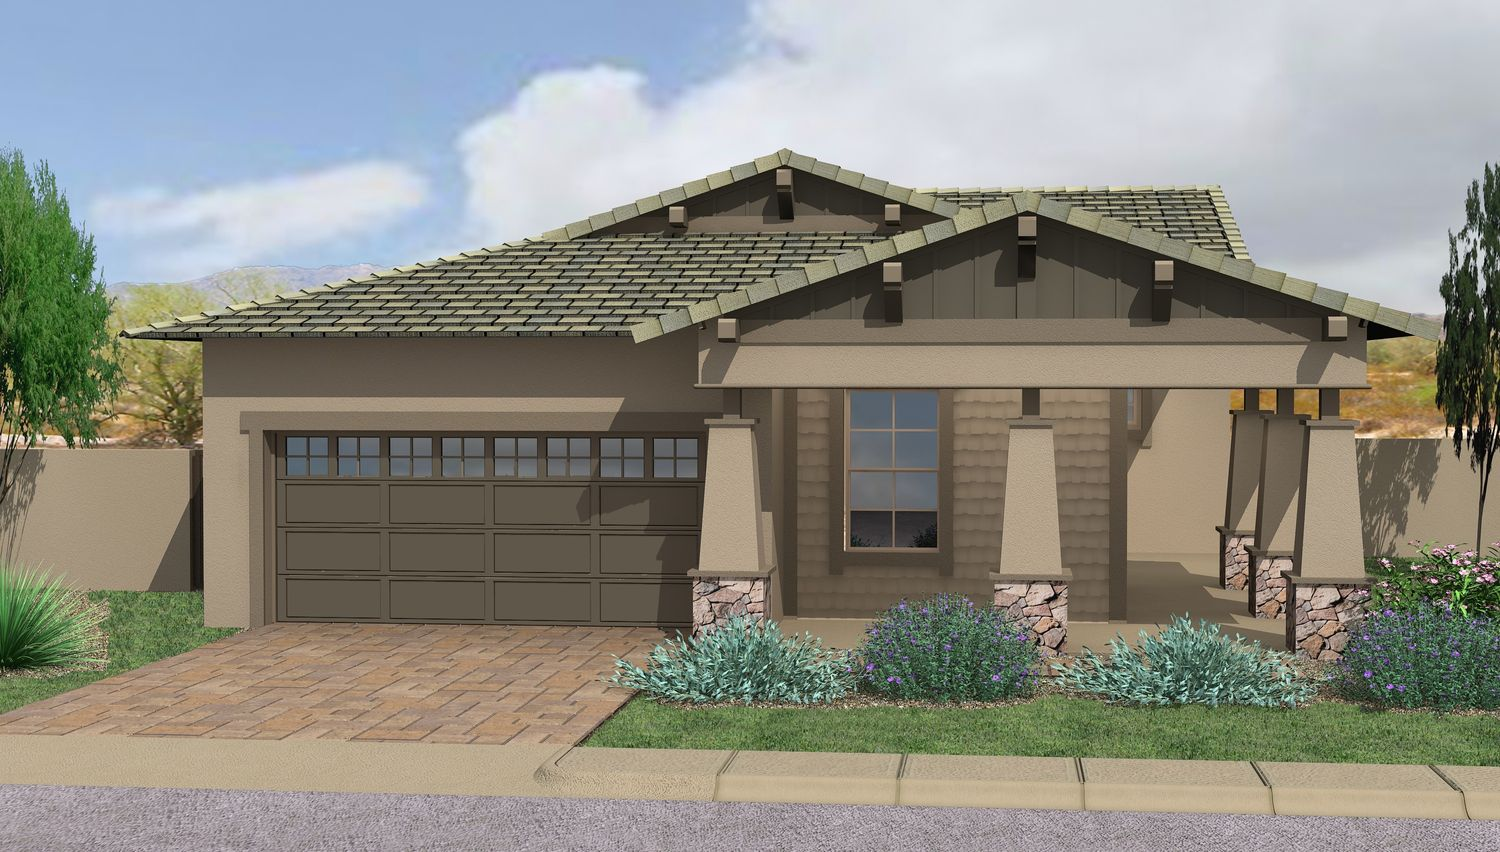 Rosewood grove new homes in queen creek az by rosewood homes for Rosewood home